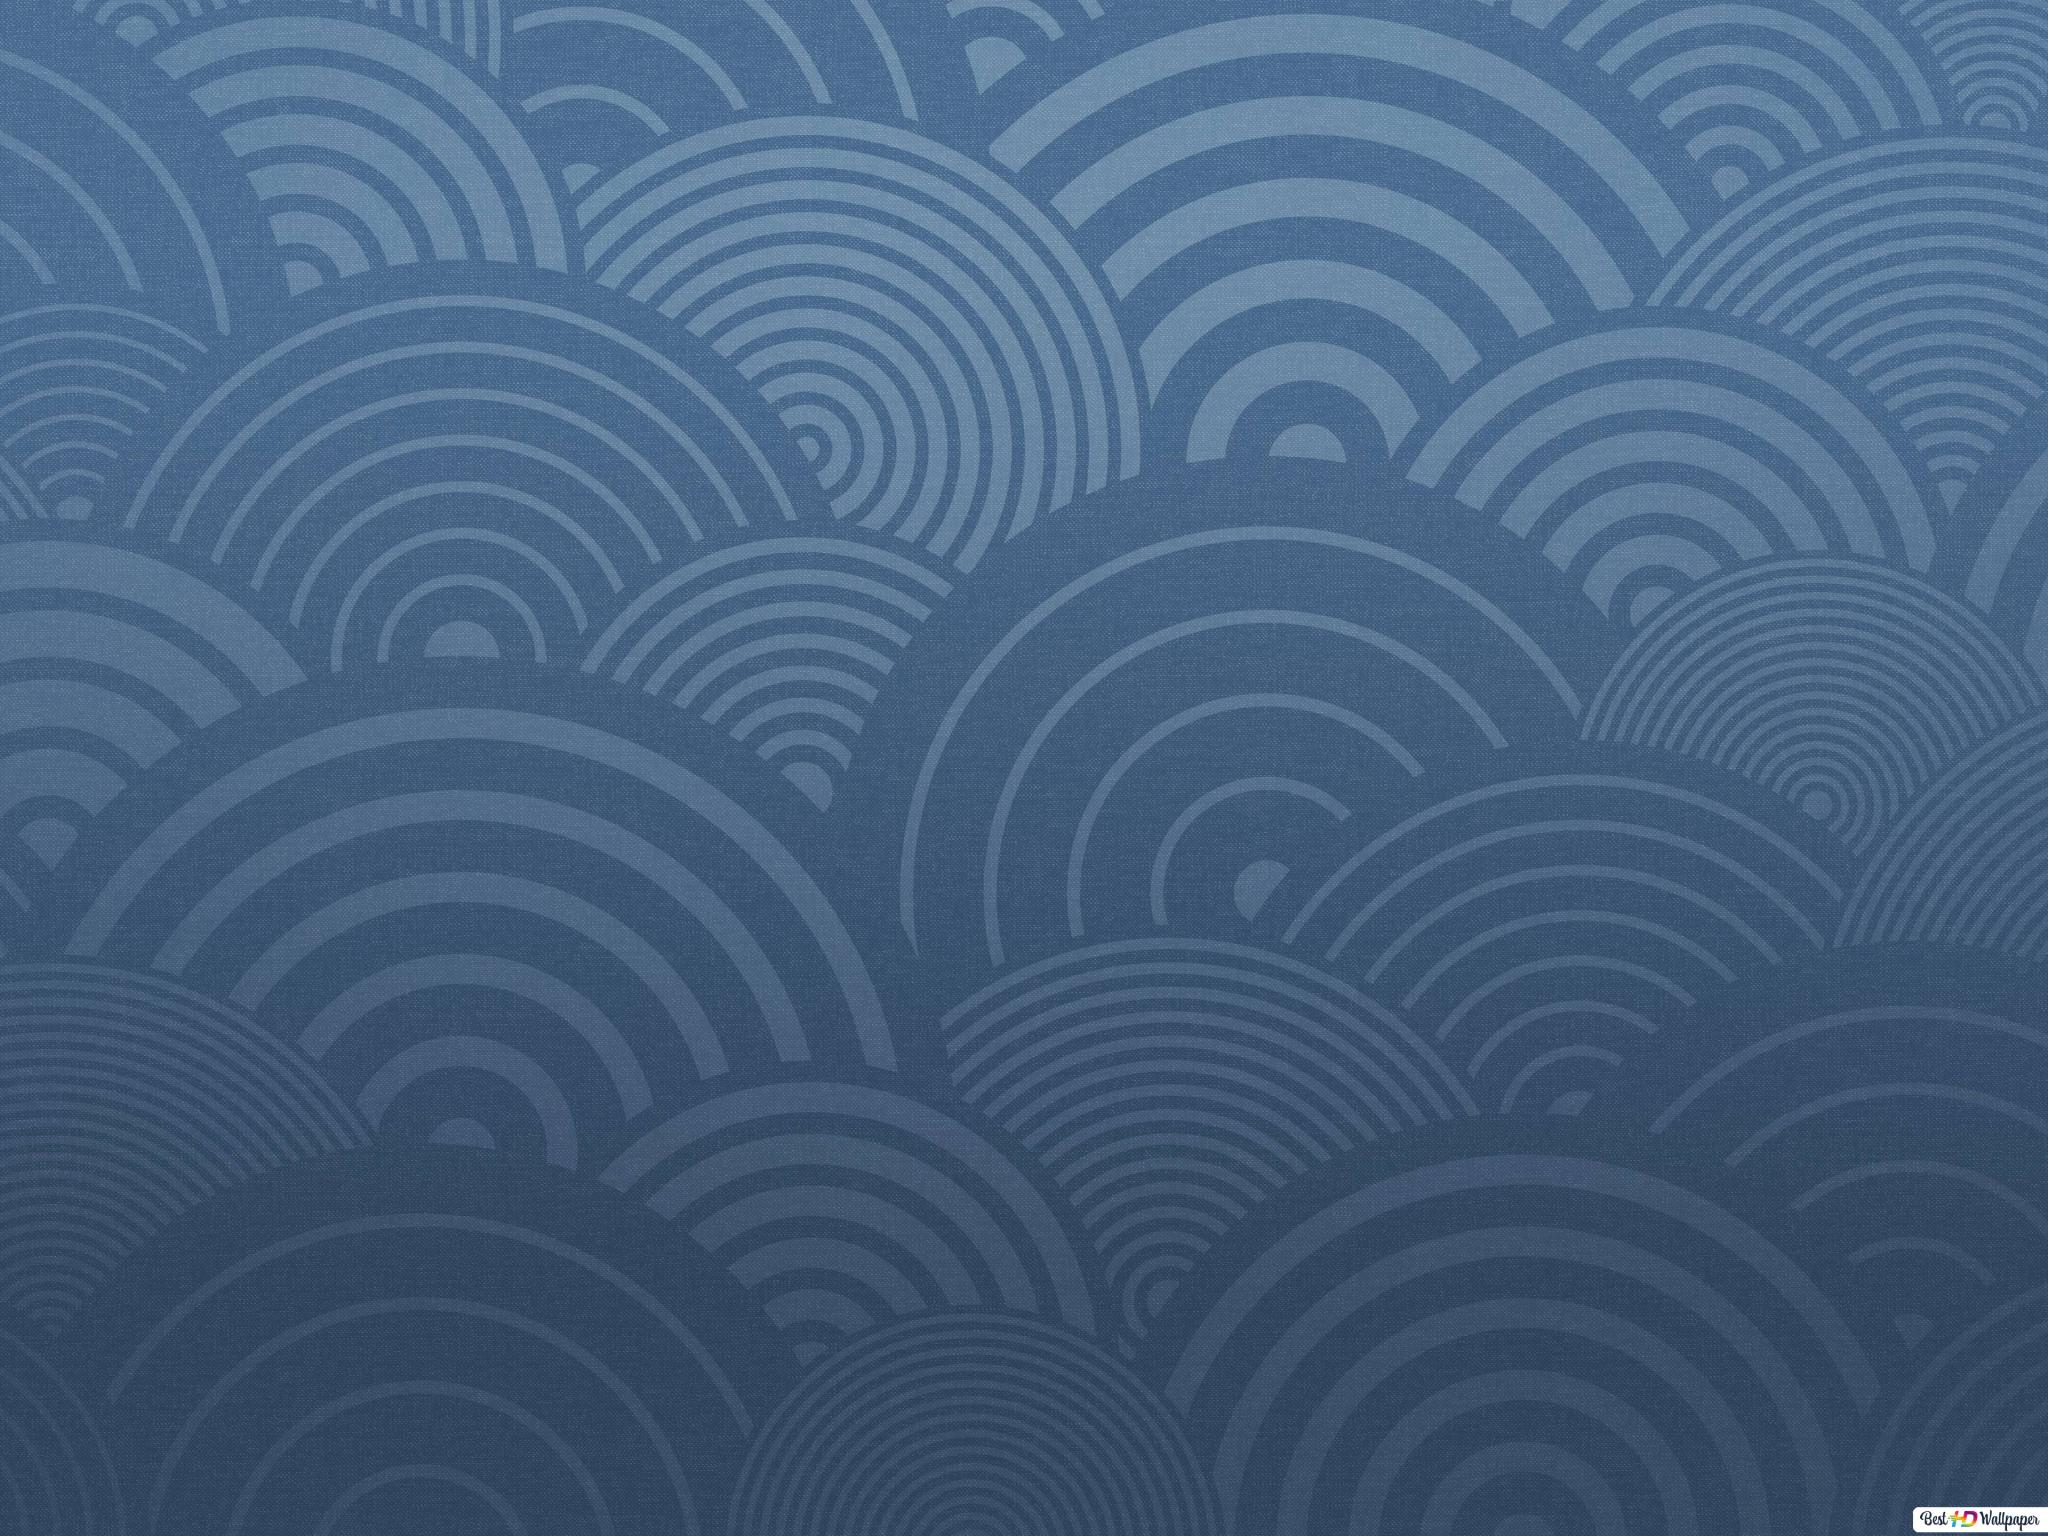 Circular pattern over blue background HD wallpaper download